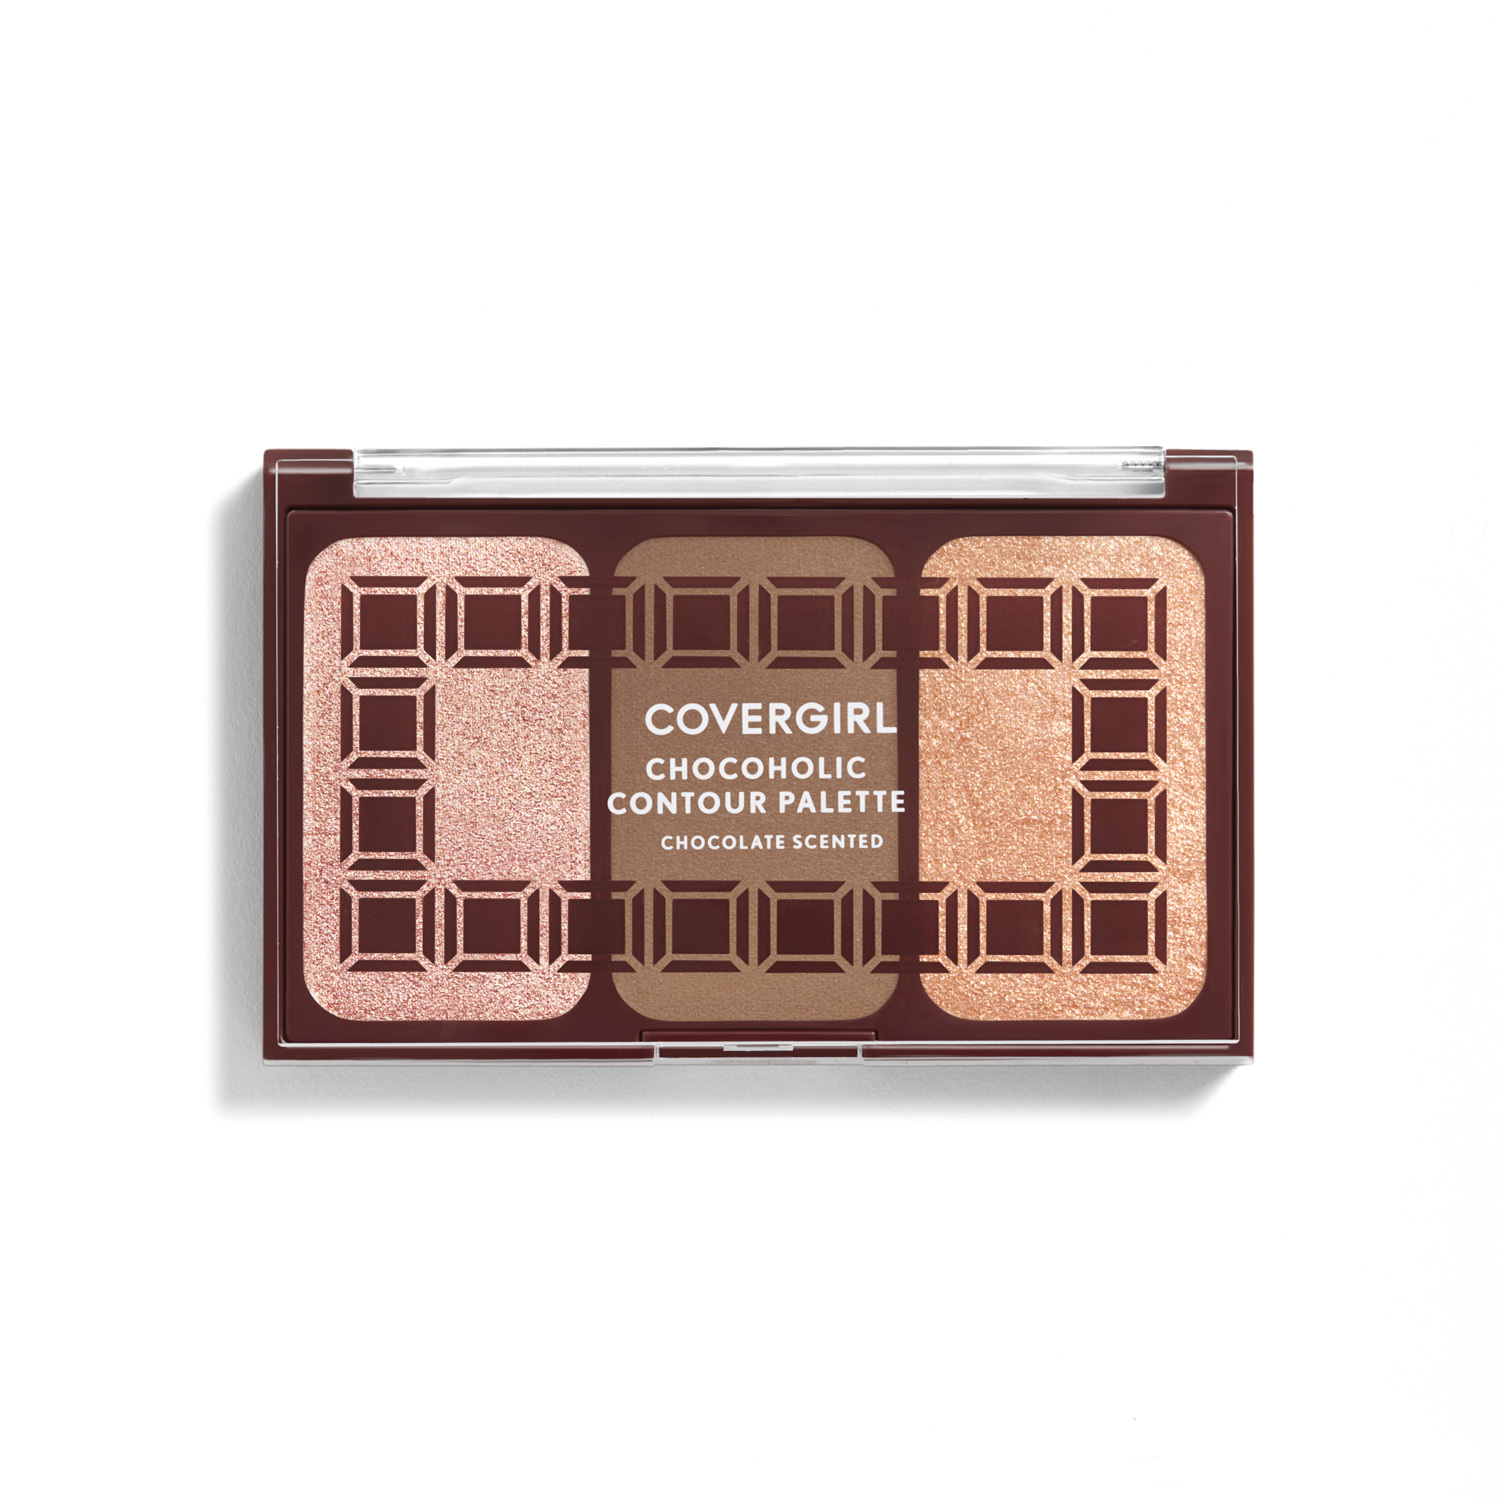 COVERGIRL Chocoholic Contour Palette